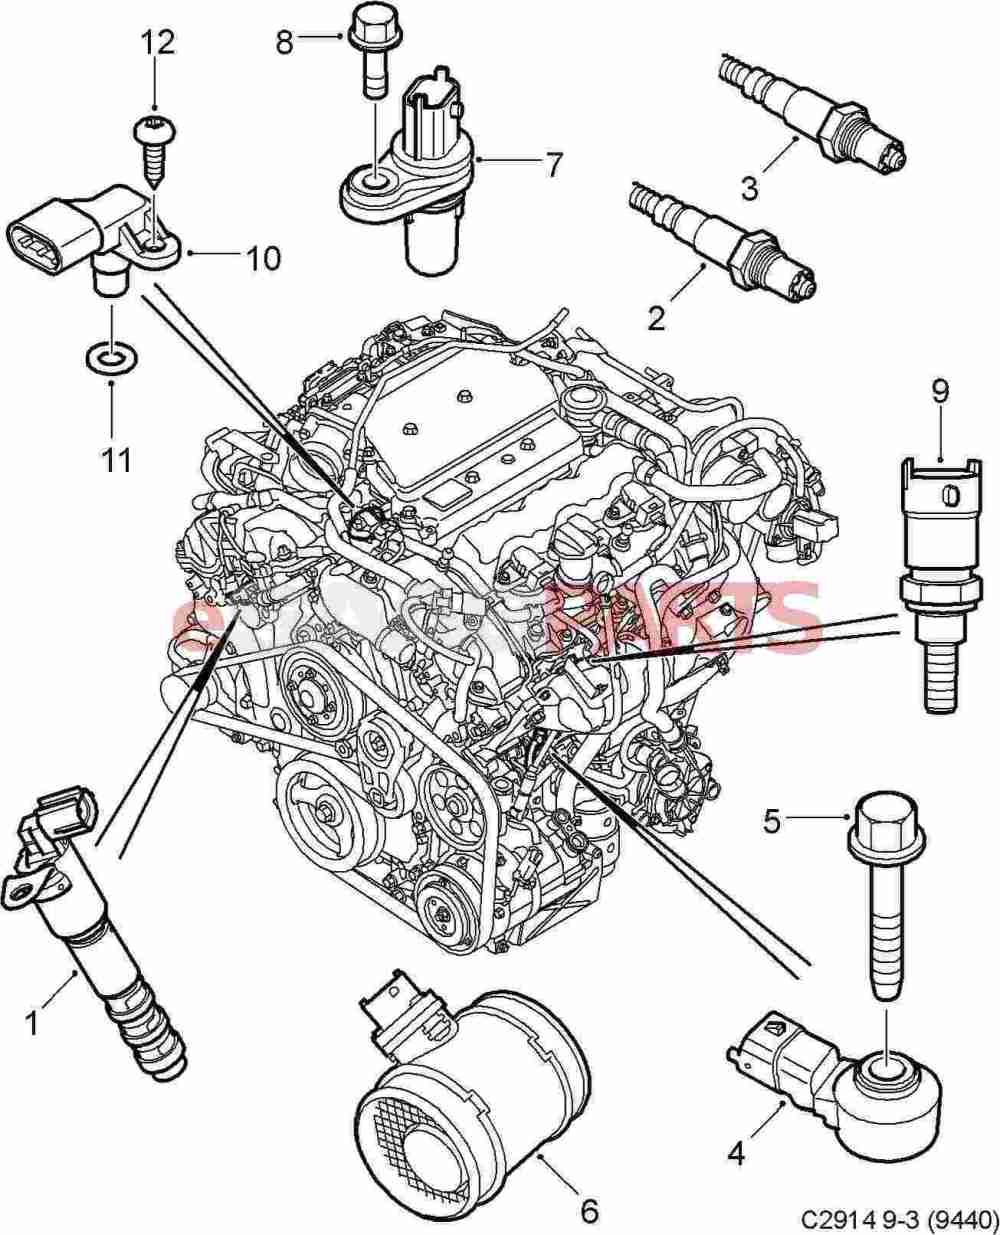 medium resolution of 1999 saab 9 3 engine diagram data wiring diagram schema cadillac engine diagram saab engine diagrams